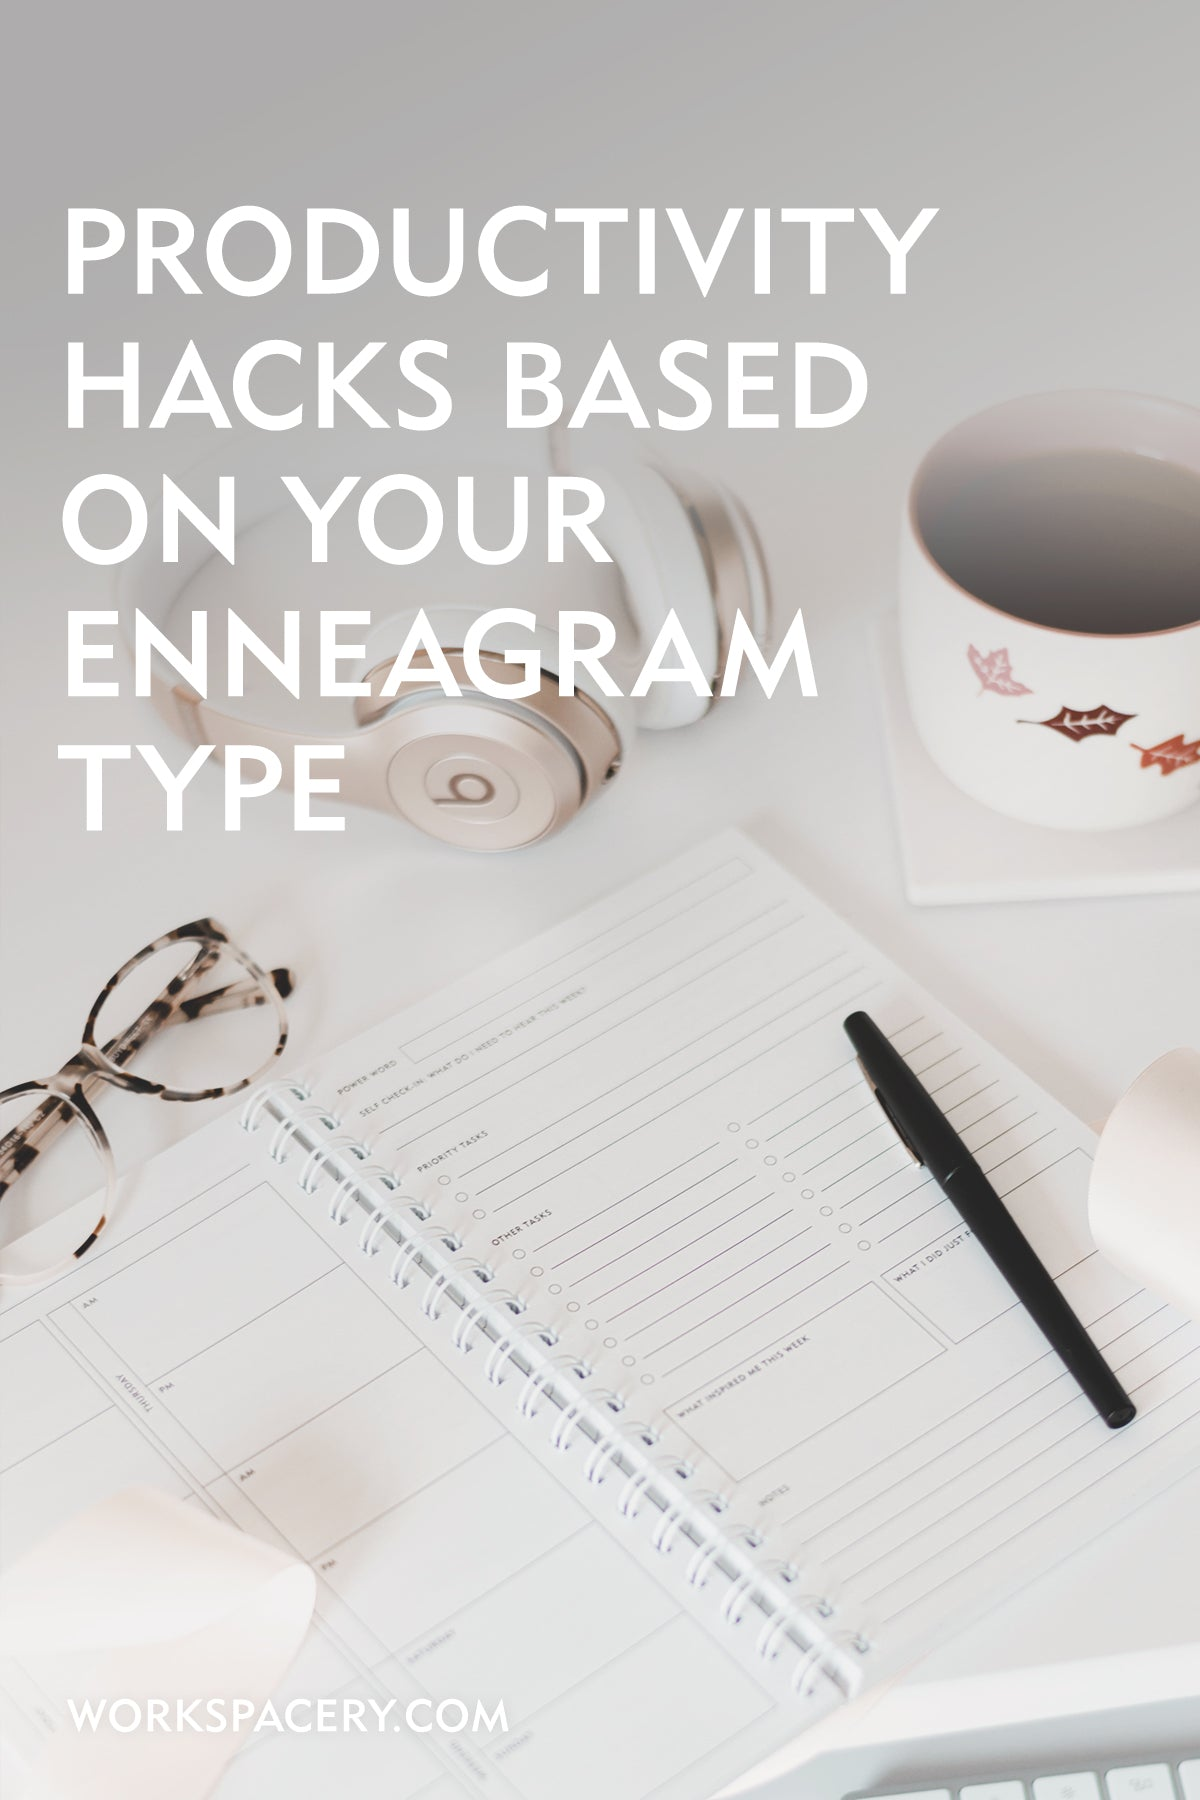 Productivity Hacks Based on Your Enneagram Type